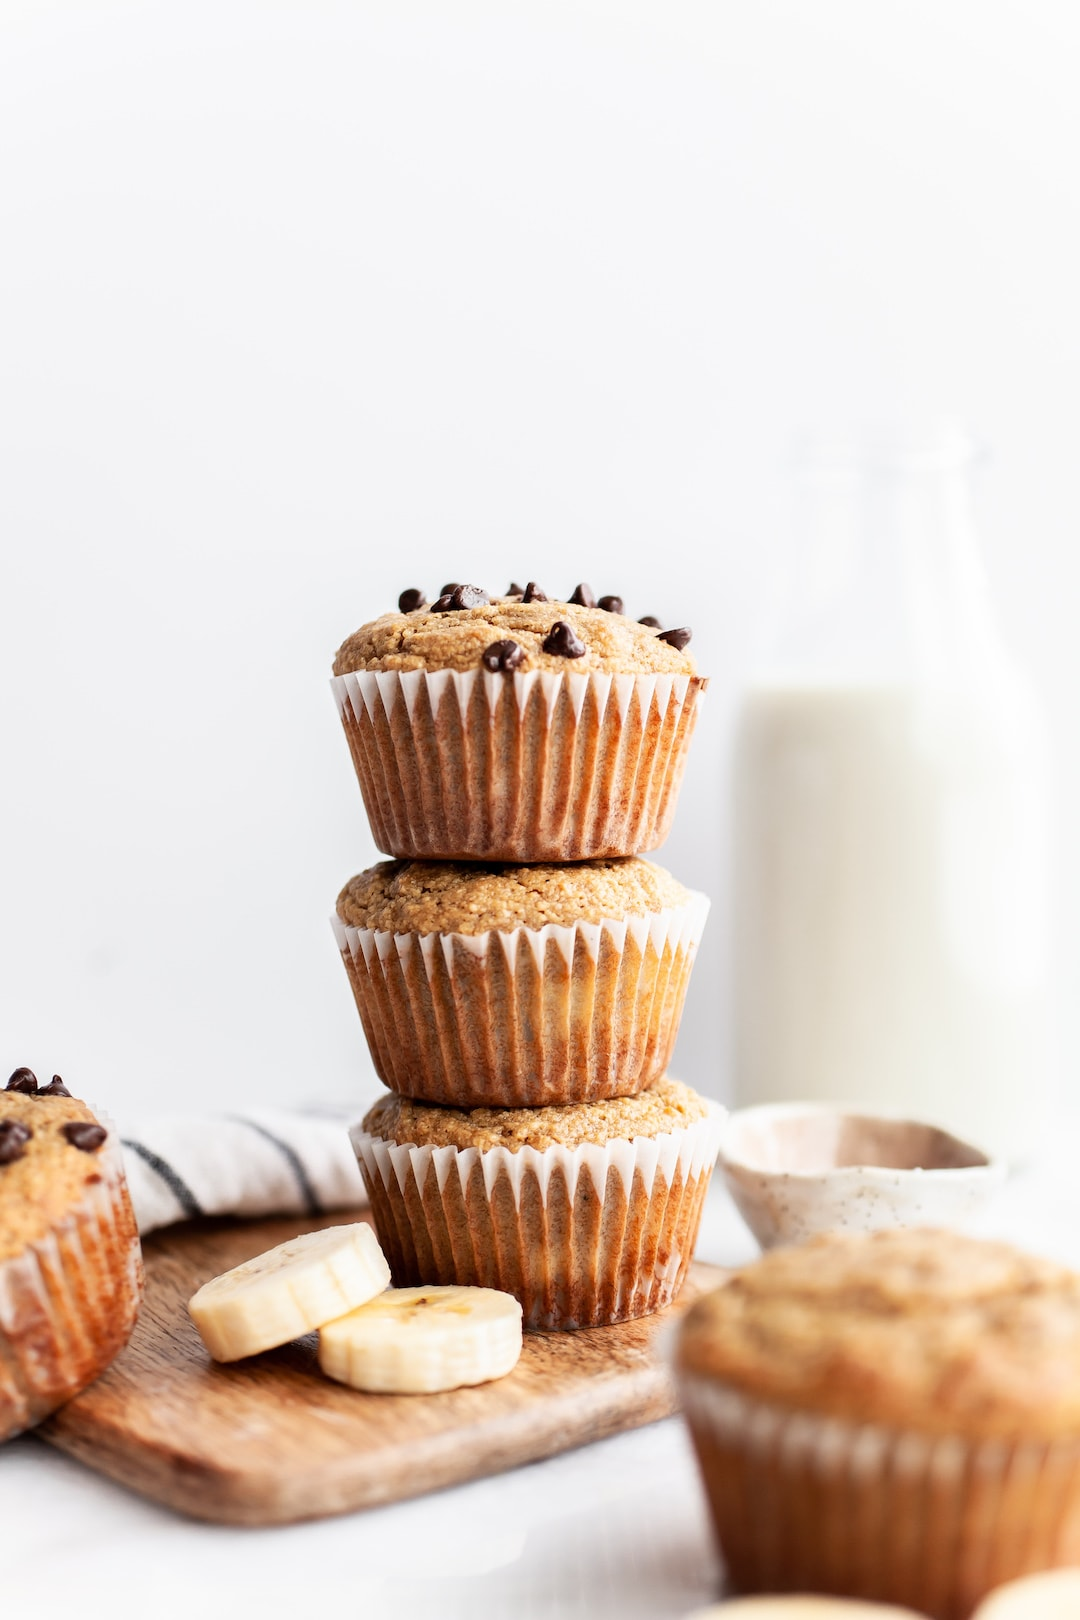 Stack of three Easy Almond Flour Banana Muffins with glass of milk in the background